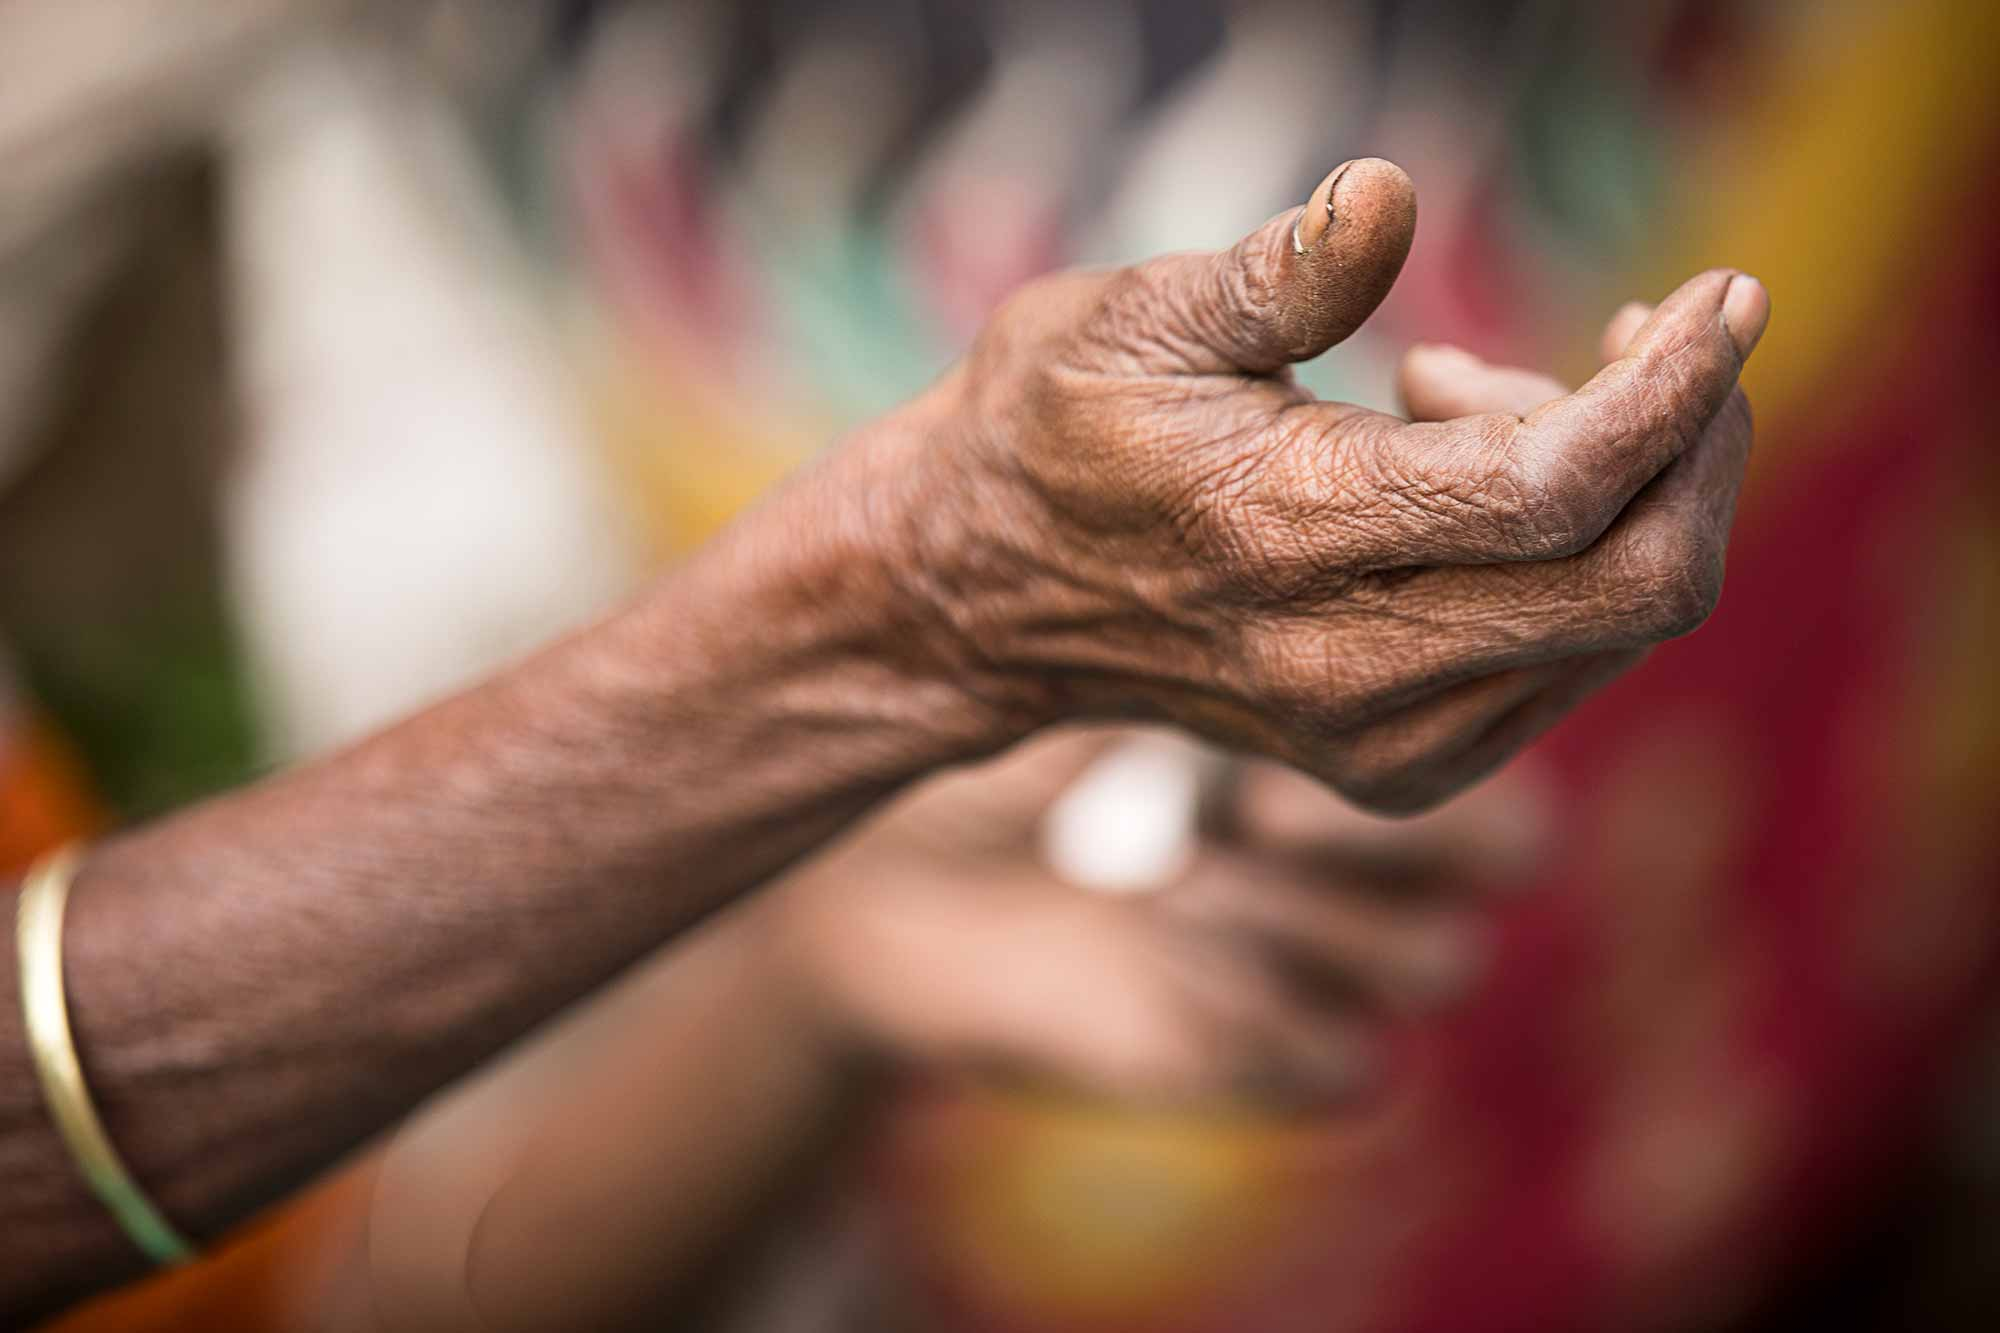 hand-woman-wrinkles-kolkata-india